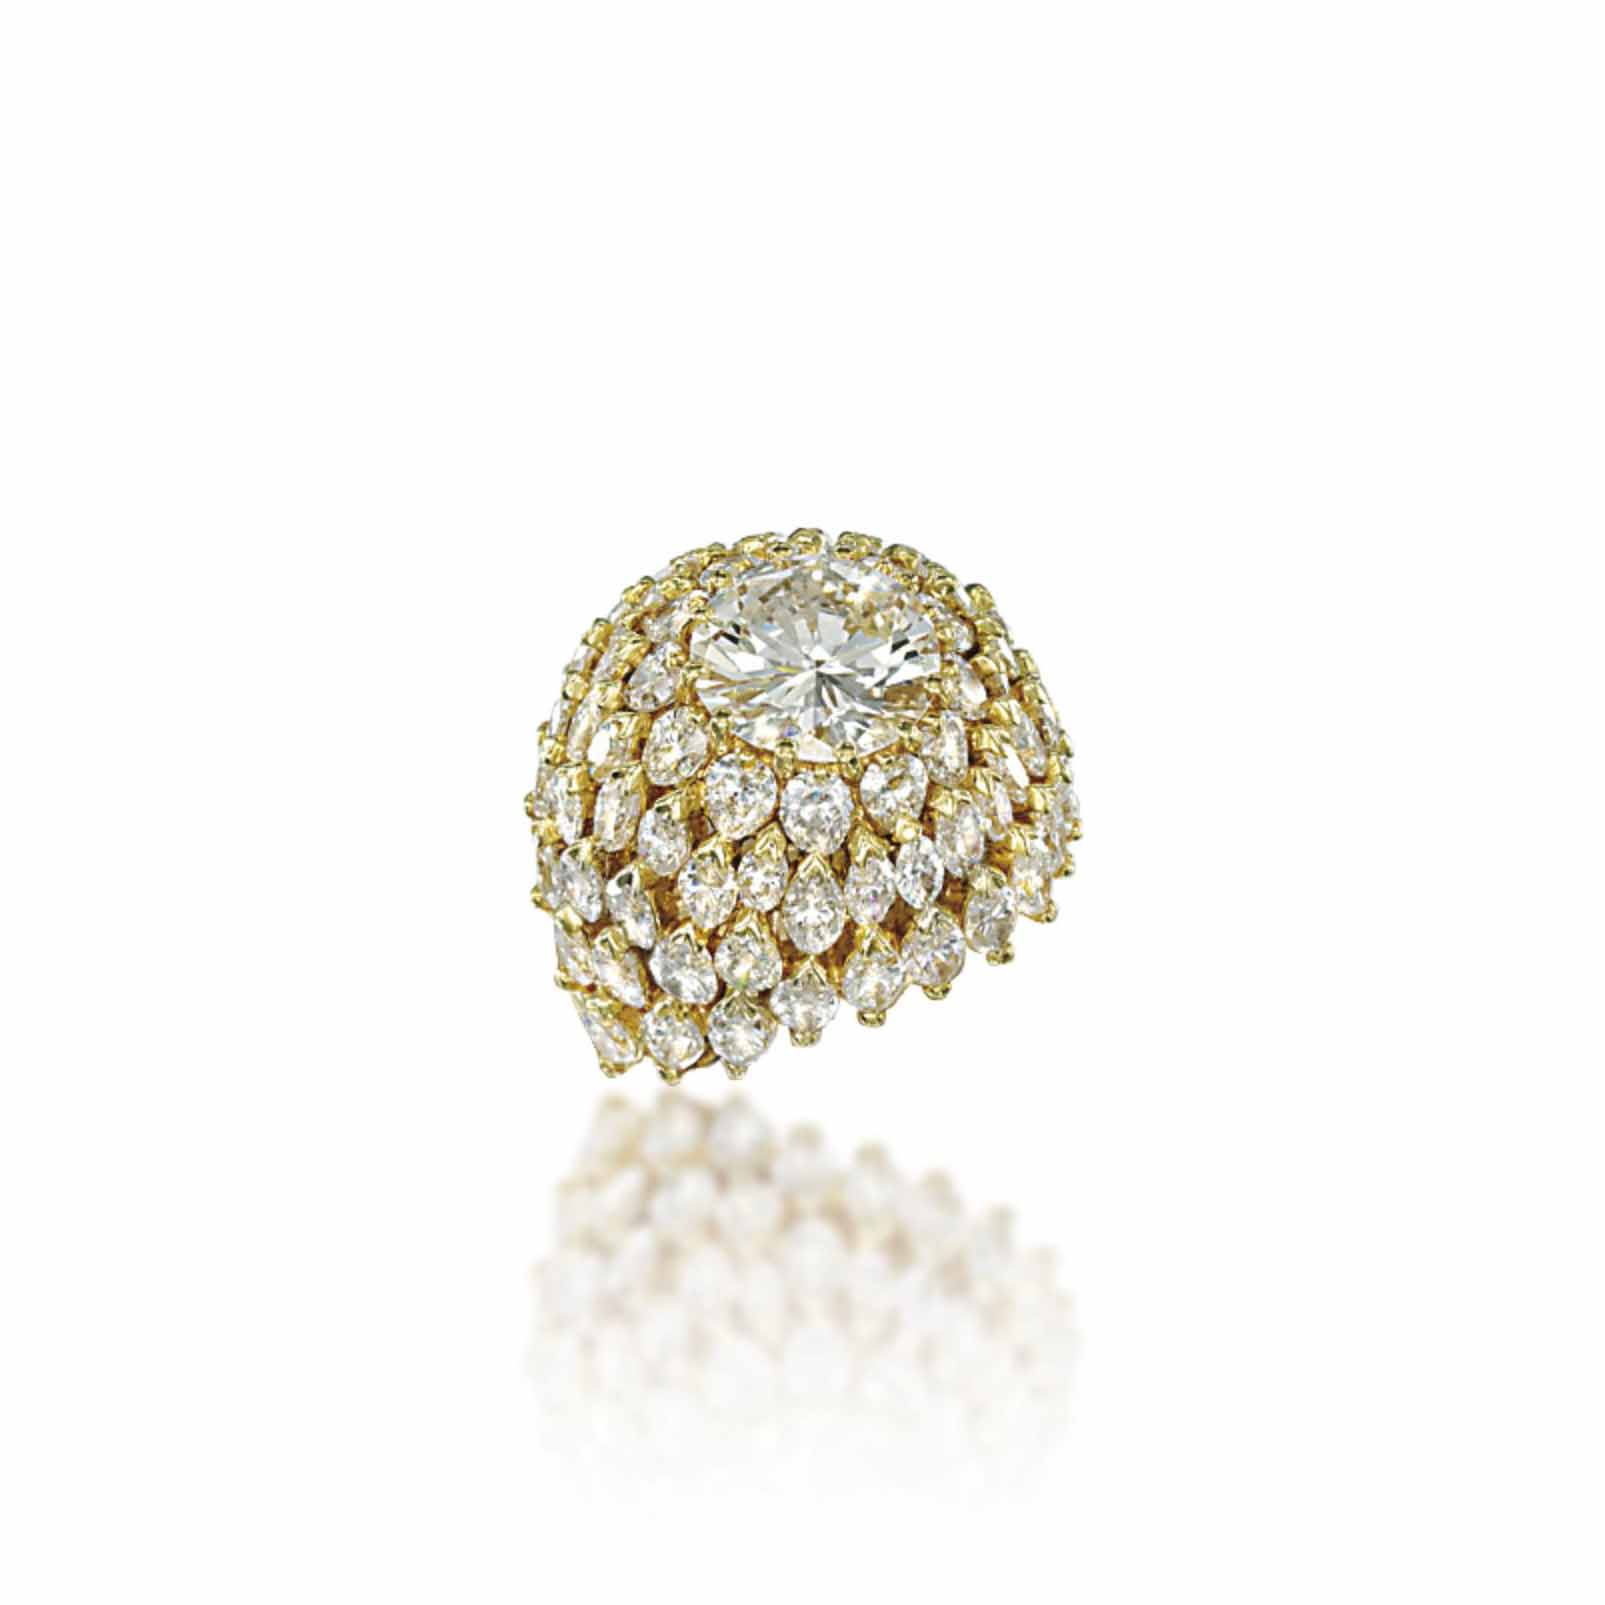 A DIAMOND COCKTAIL RING, BY CHANTECLER